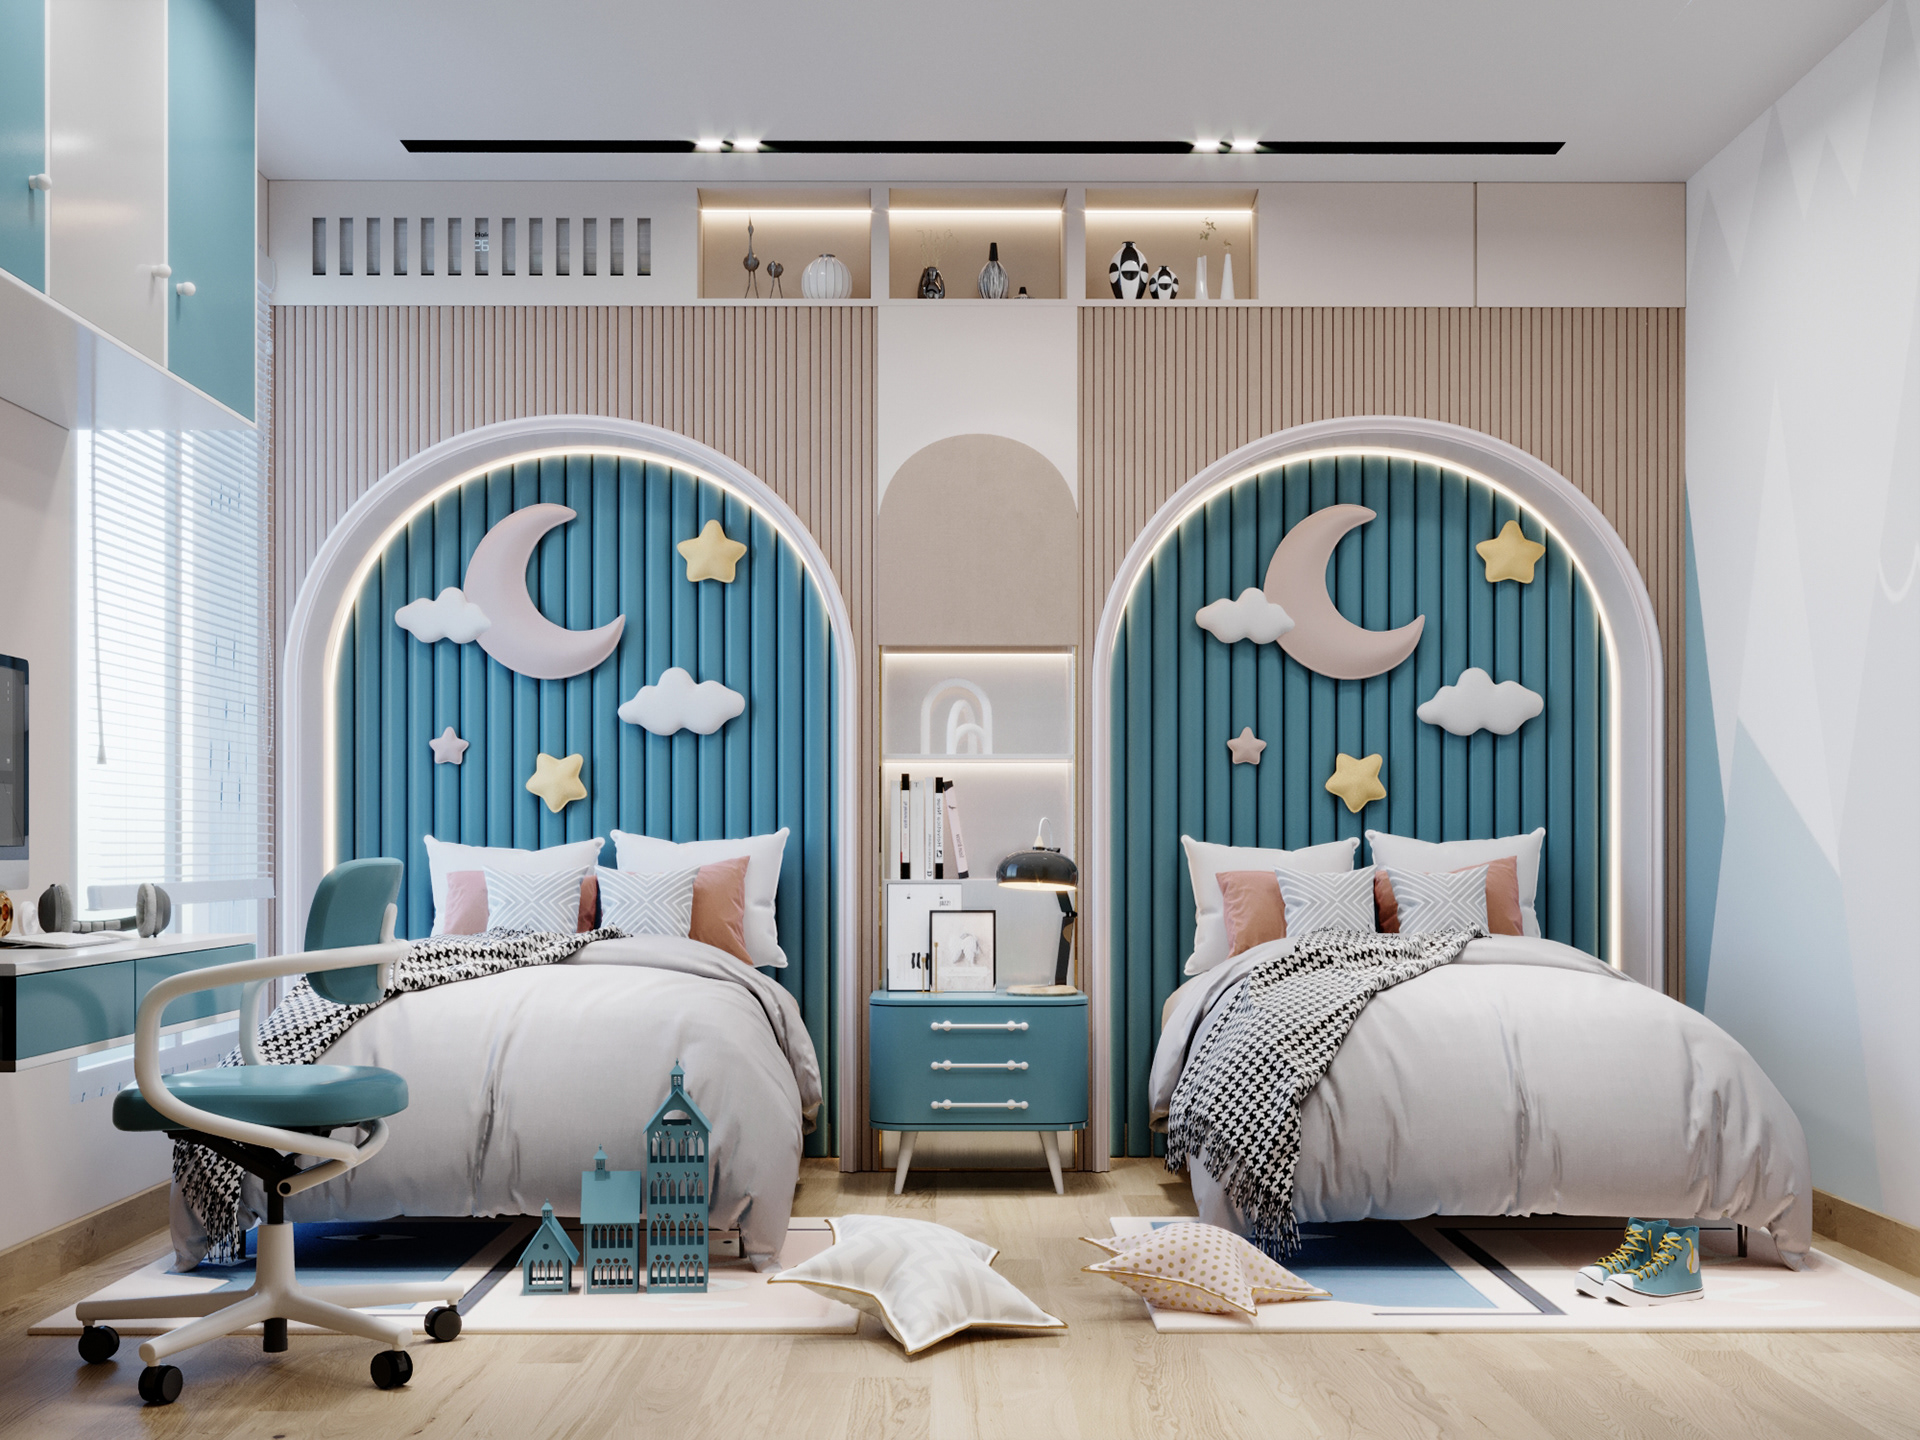 Cool Boys Sky Theme Bedroom with shared beds